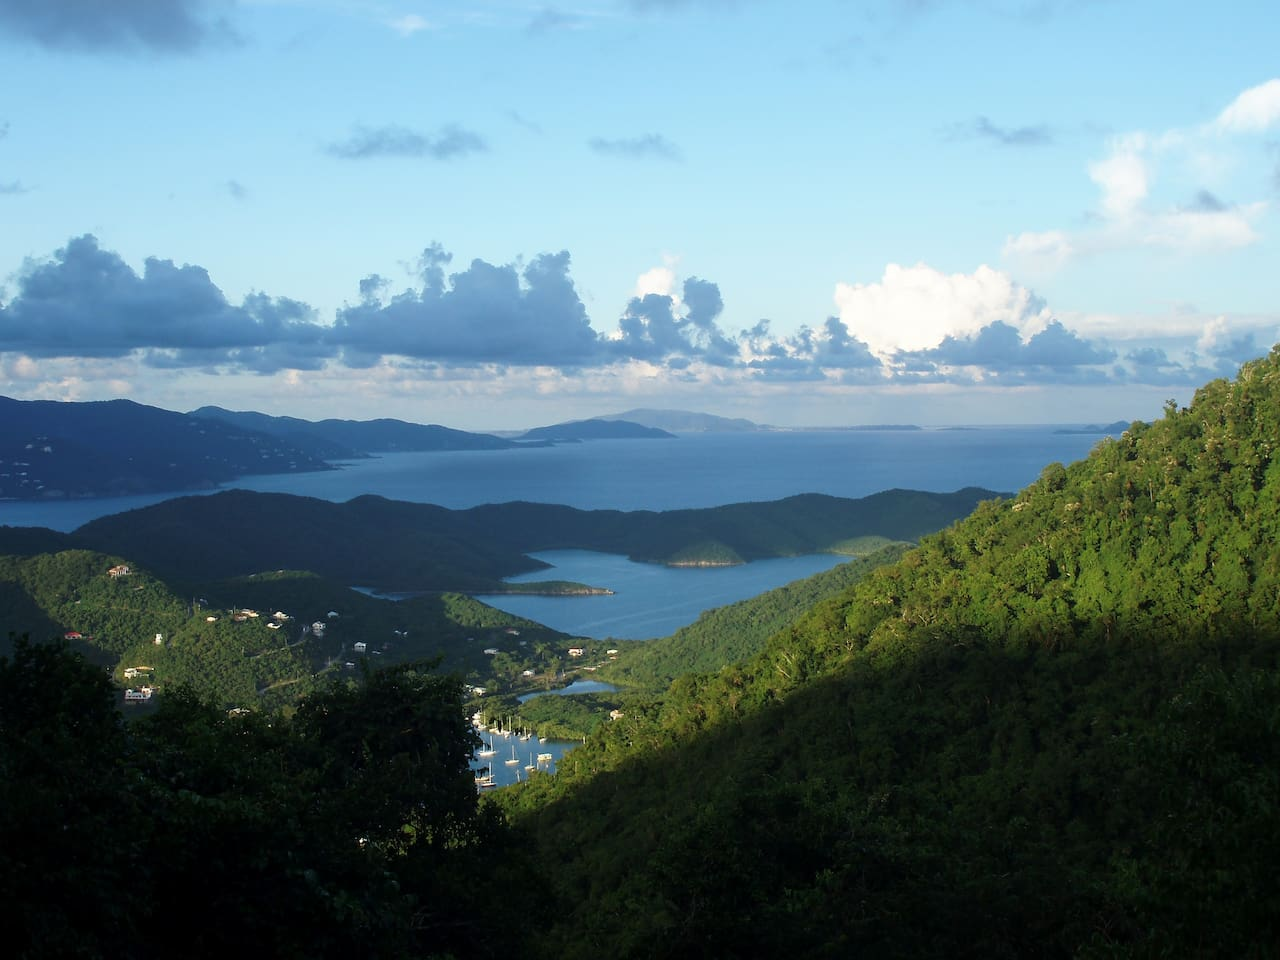 Easterly View over Coral Bay, Hurricane Hole, Sir Drake Channel, Tortola and Virgin Gorda